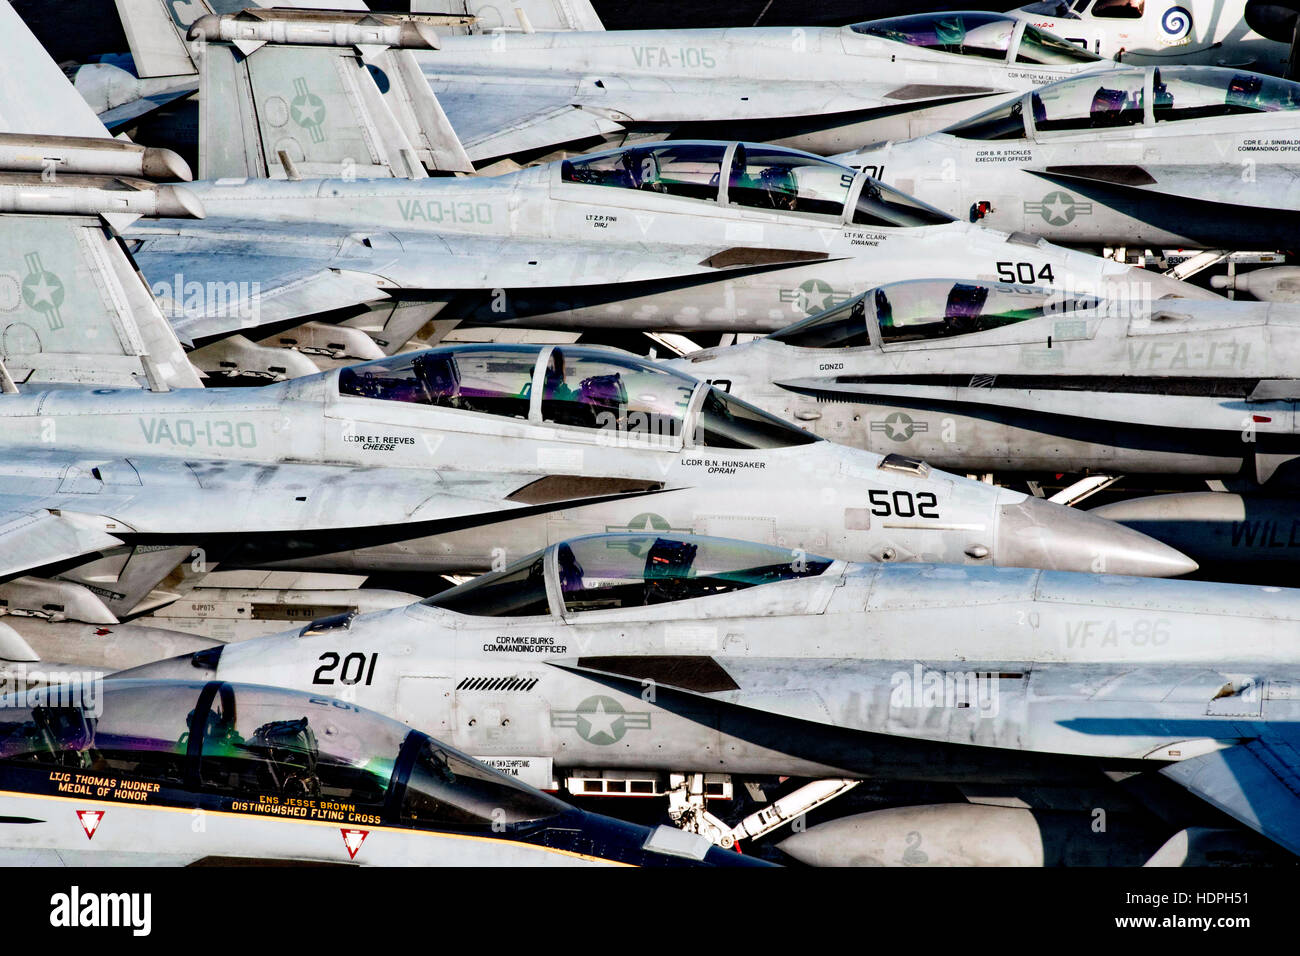 Aircraft stand by on the flight deck aboard the USN Nimitz-class aircraft carrier USS Dwight D. Eisenhower November - Stock Image